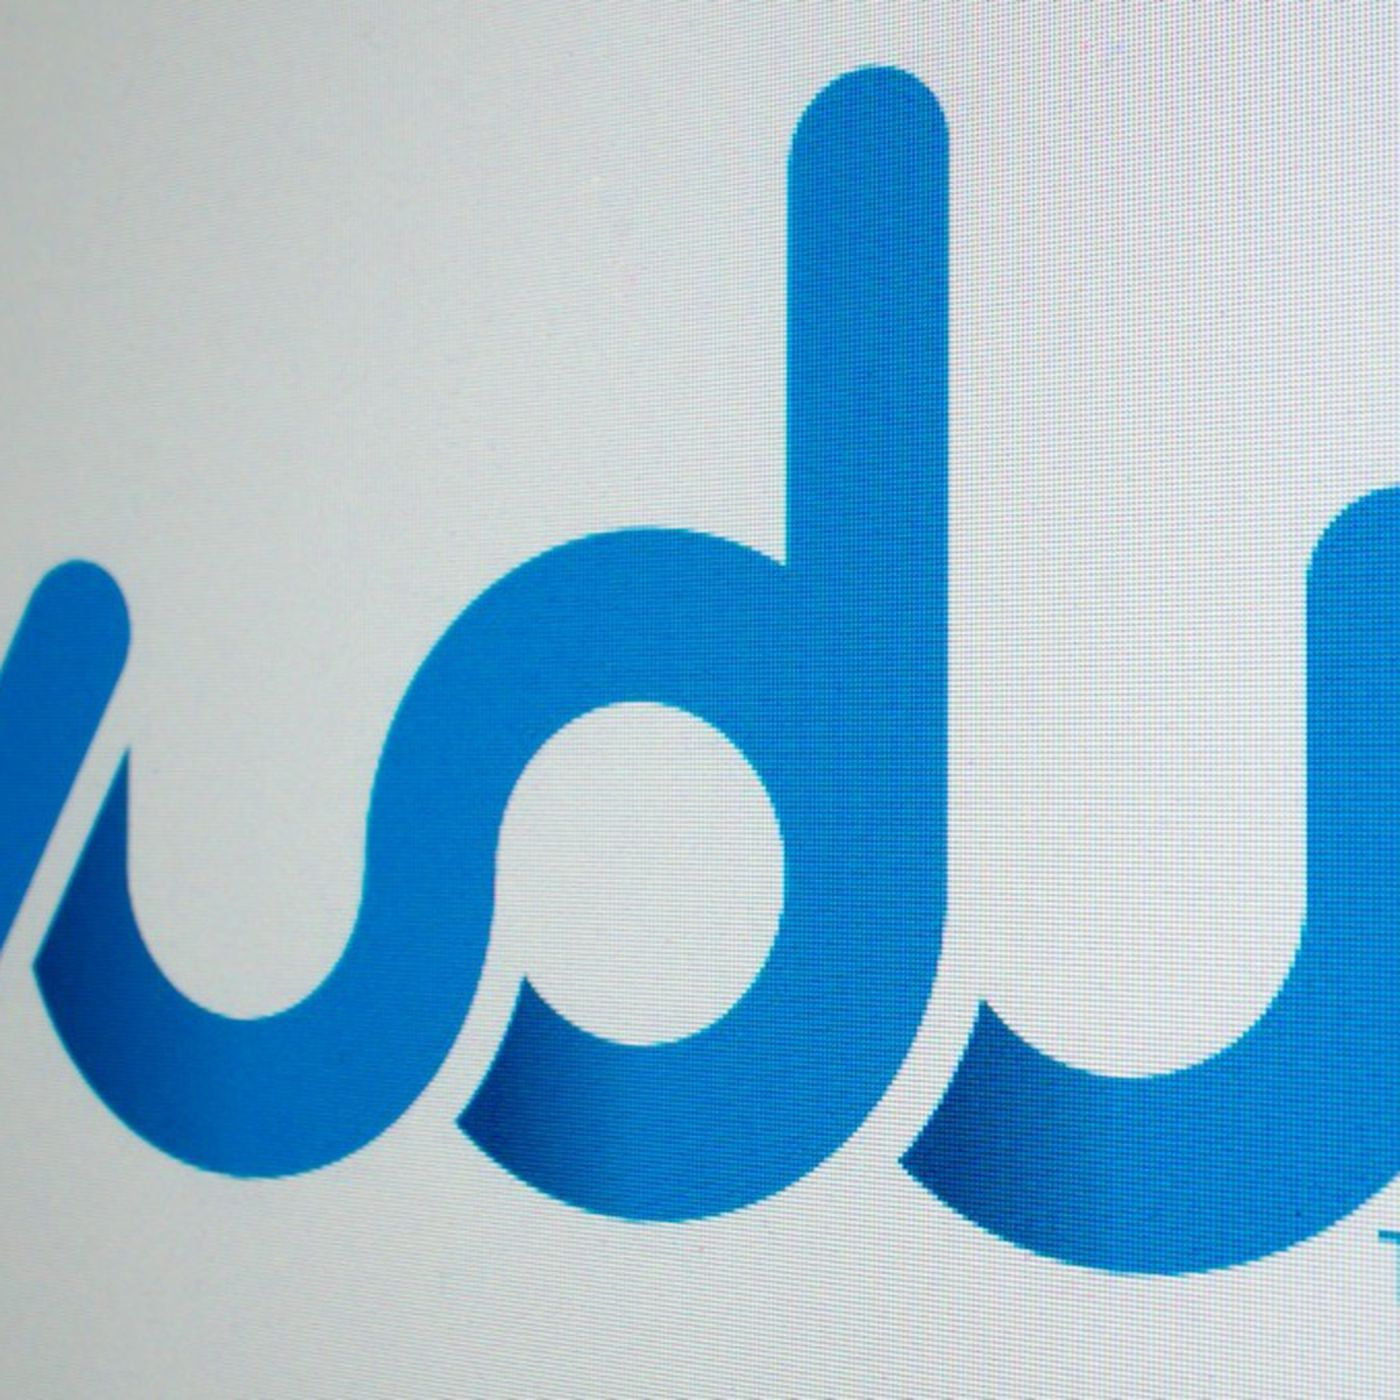 Walmart reportedly plans to launch Netflix competitor under its Vudu